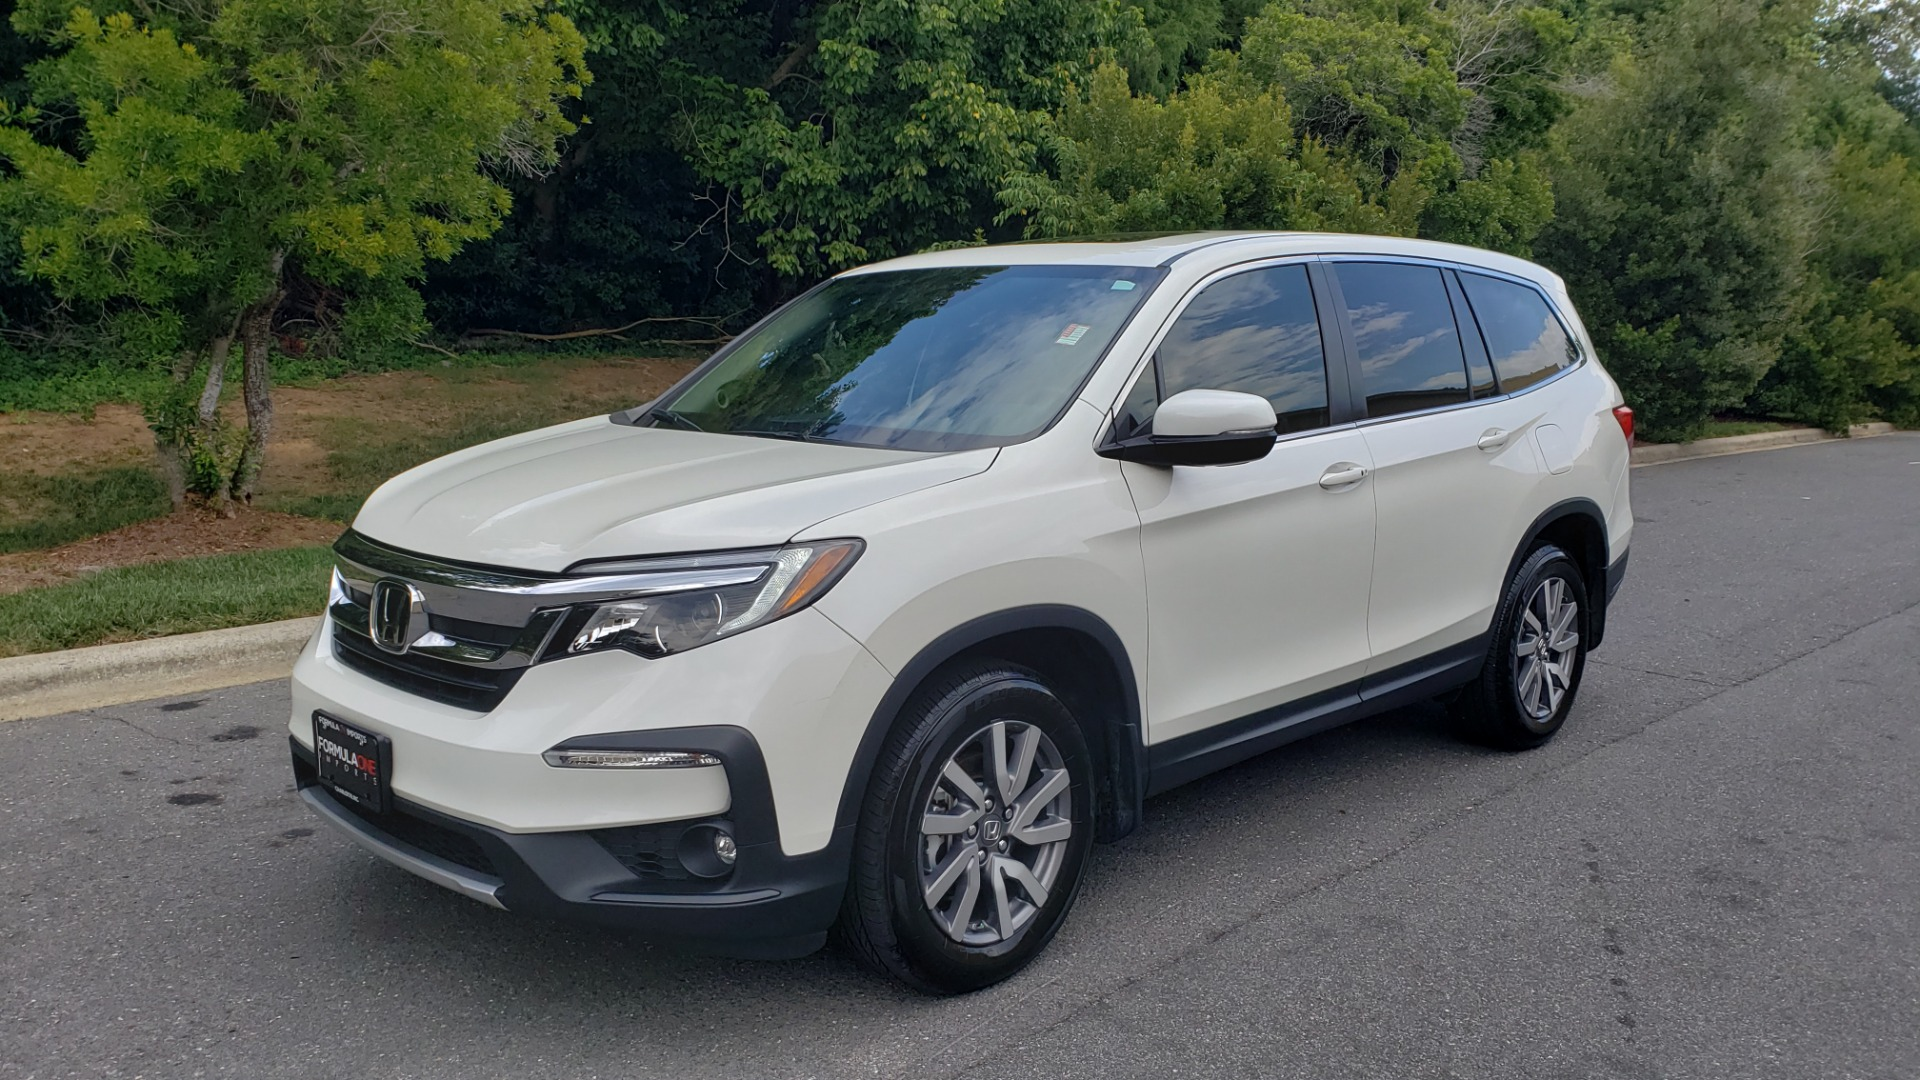 Used 2019 Honda PILOT EX-L / V6 / NAV / SUNROOF / DVD / 3-ROW / REARVIEW for sale Sold at Formula Imports in Charlotte NC 28227 1